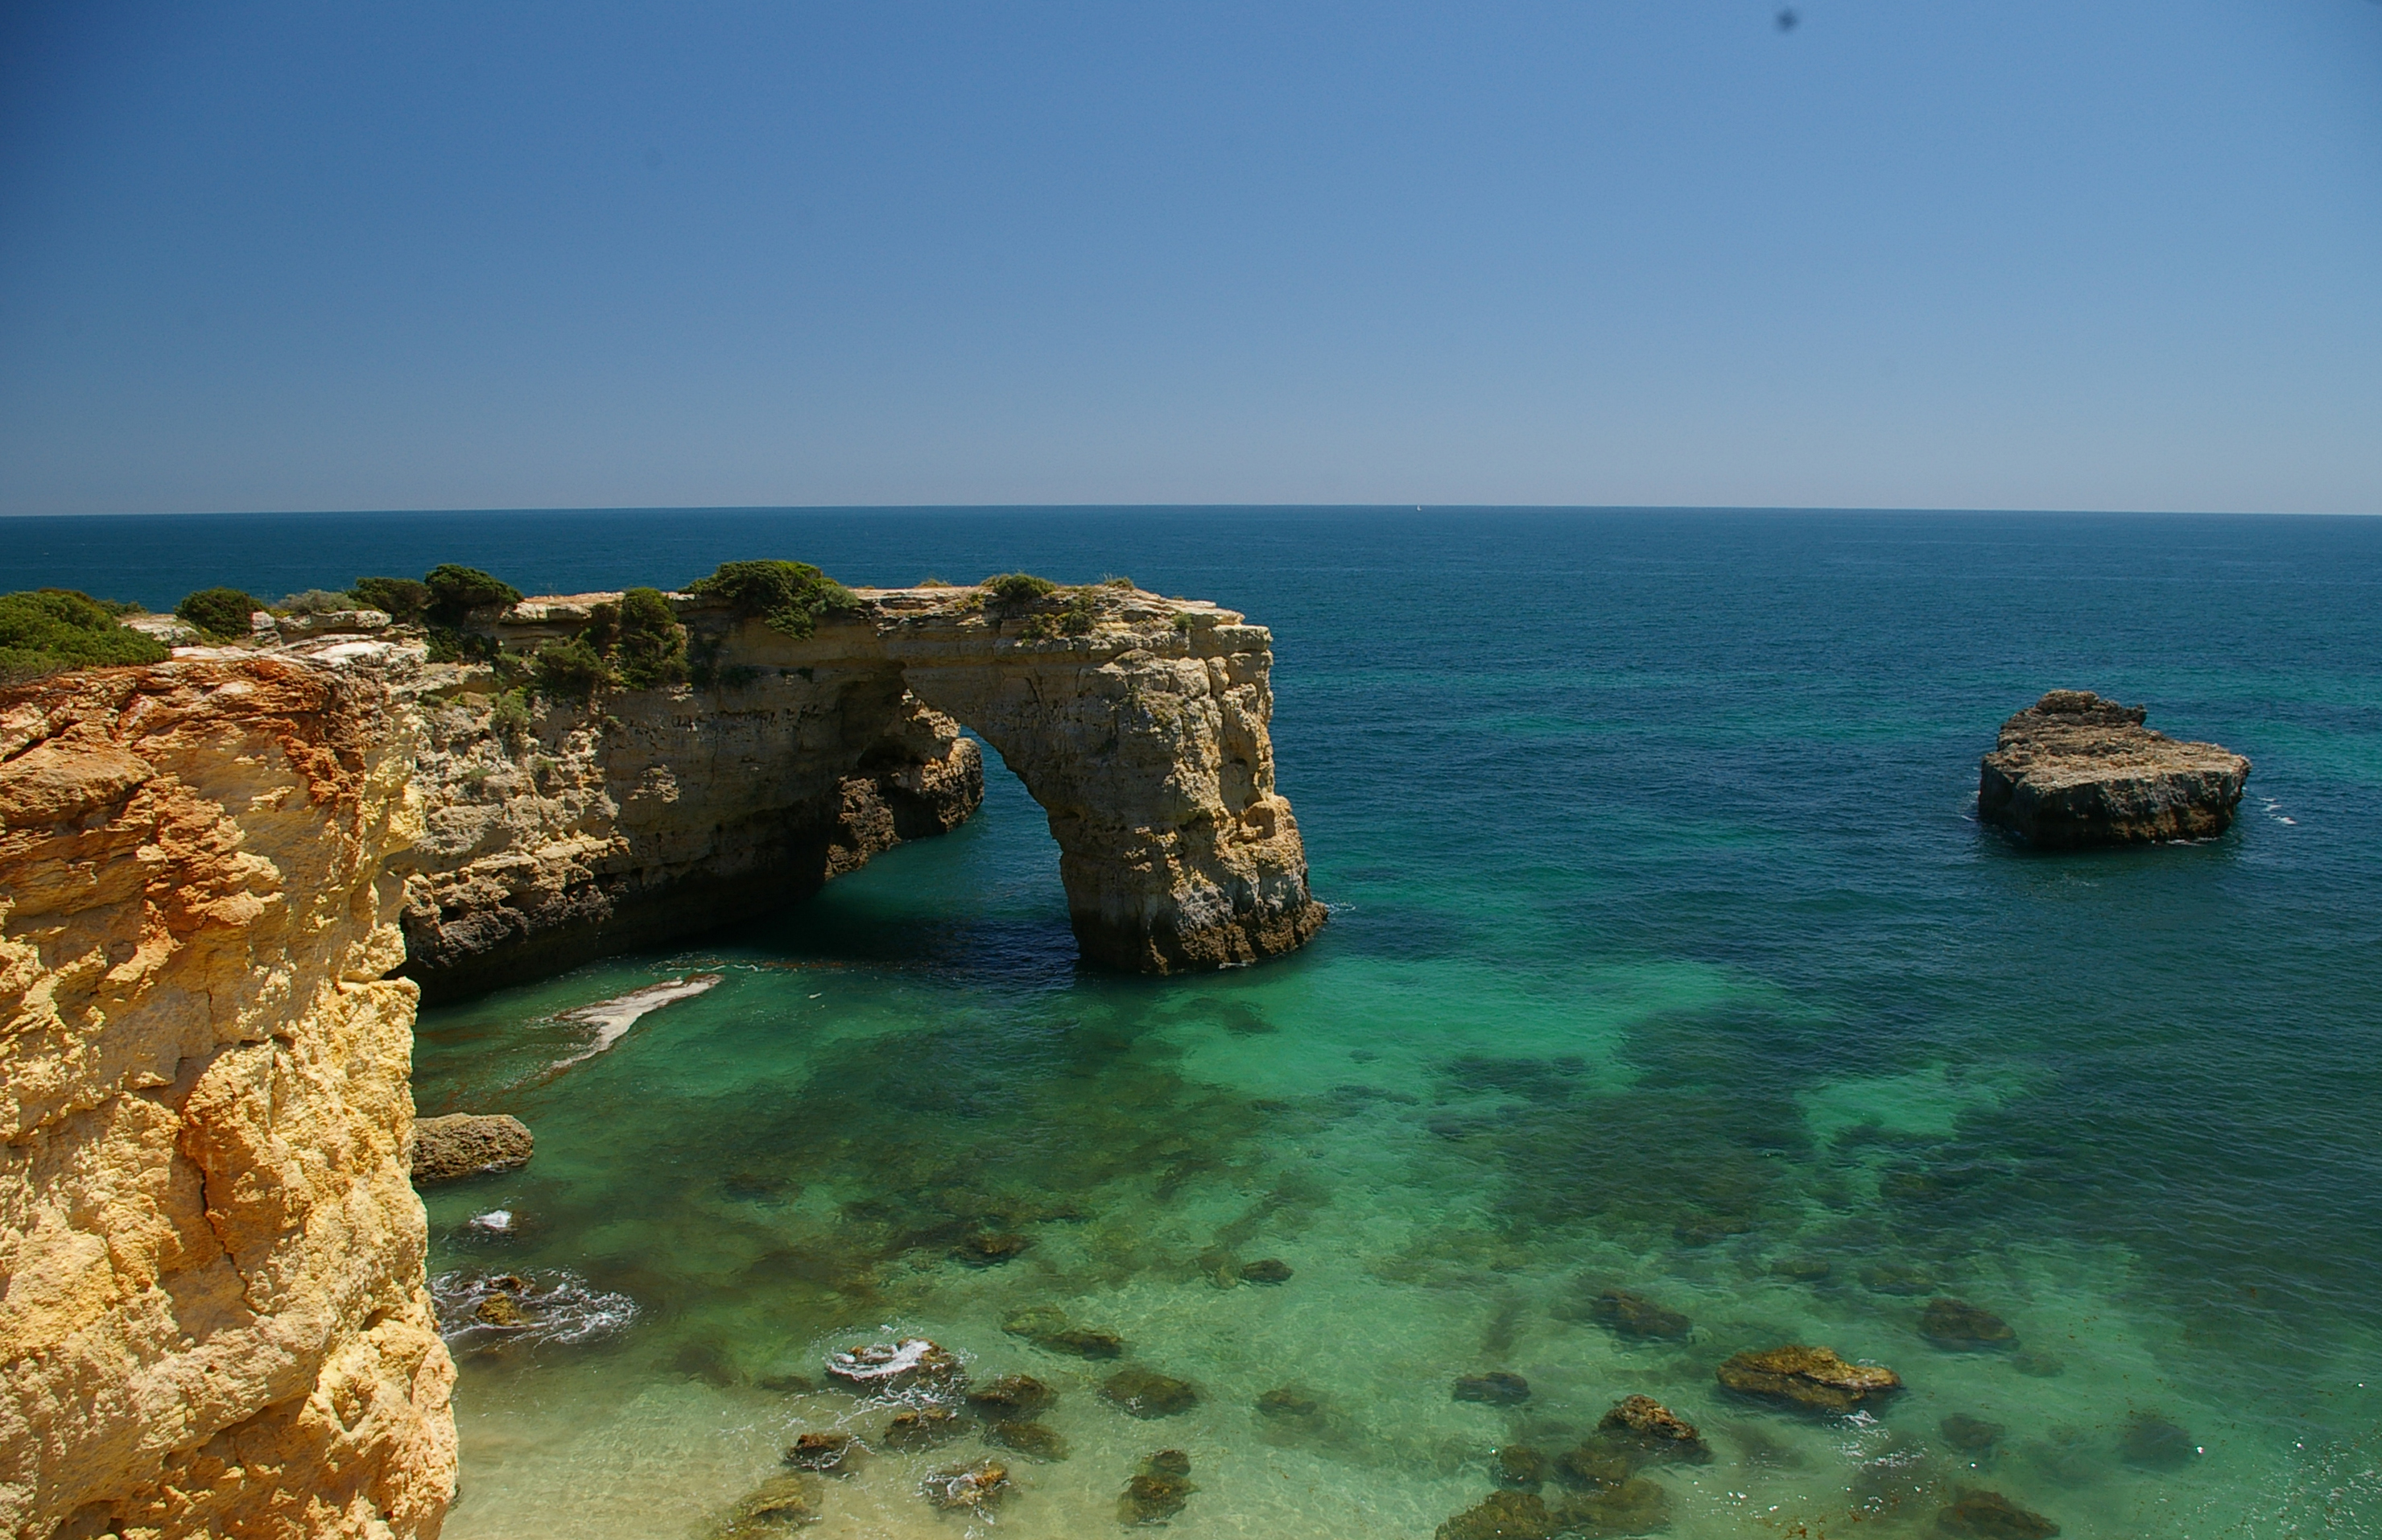 View of the atlantic ocean looking north over the stone arch at Albandeira beach Algarve Portugal